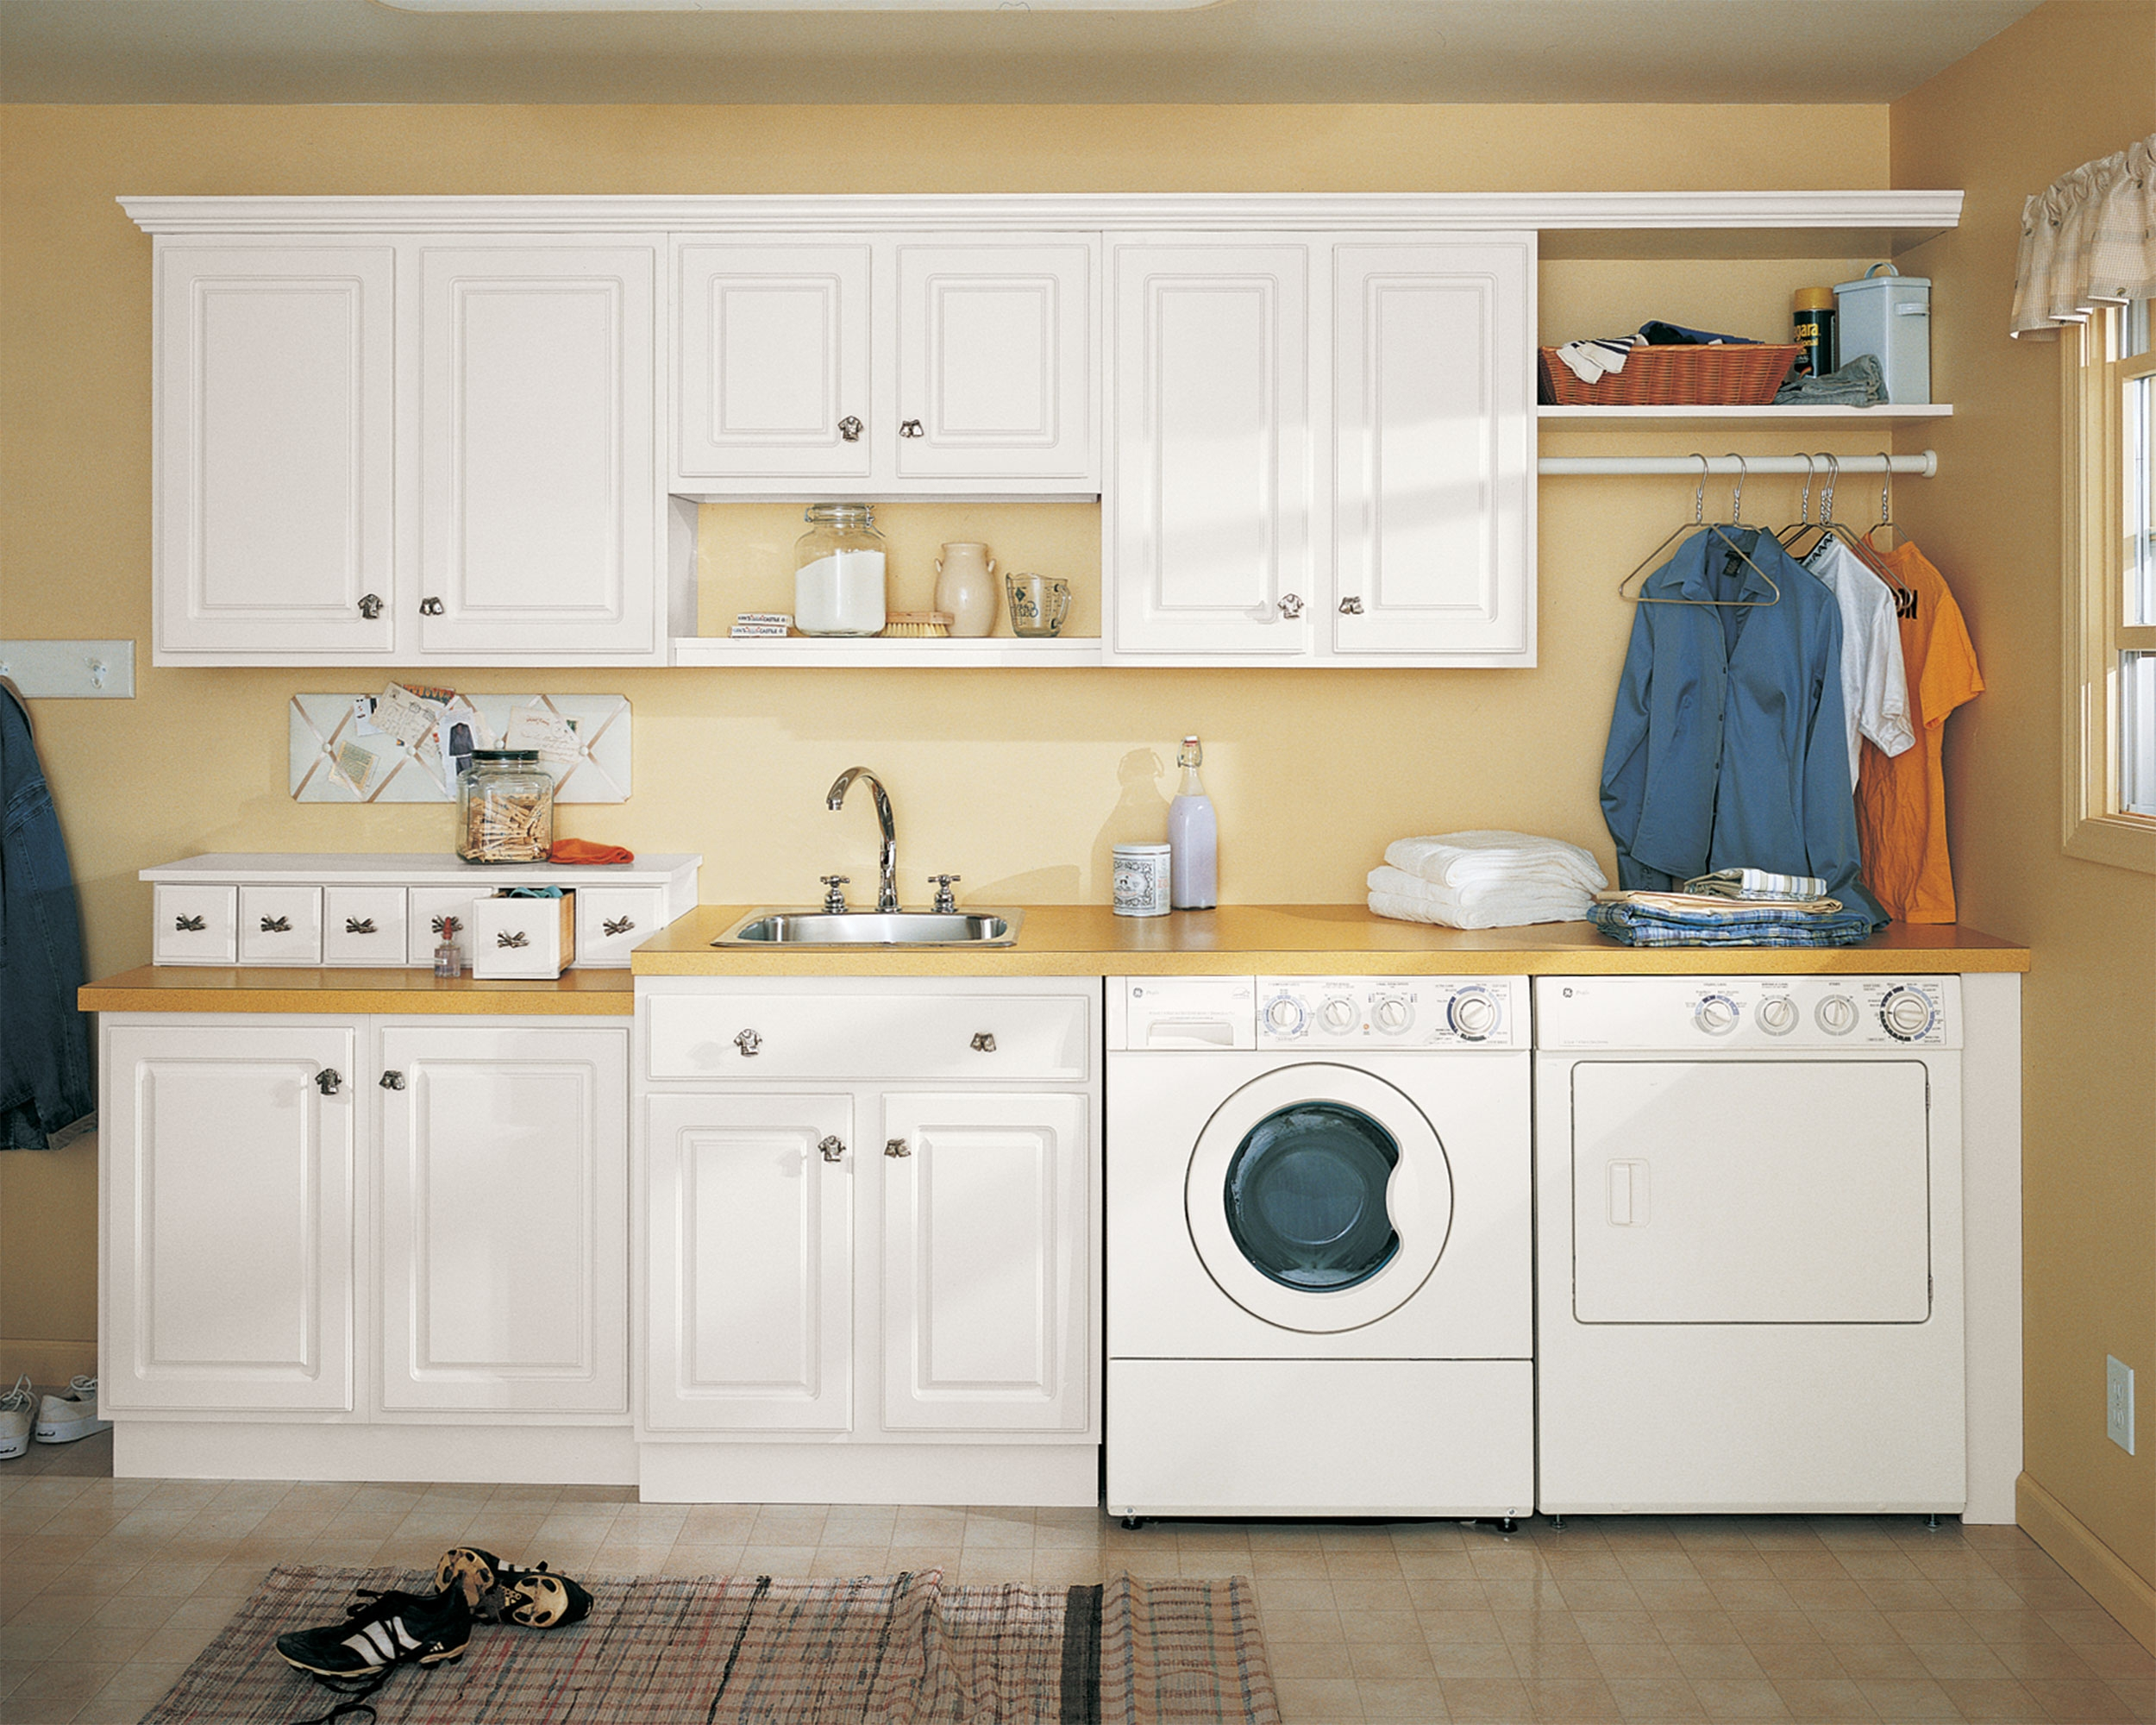 Kitchen Cabinets For Utility Room